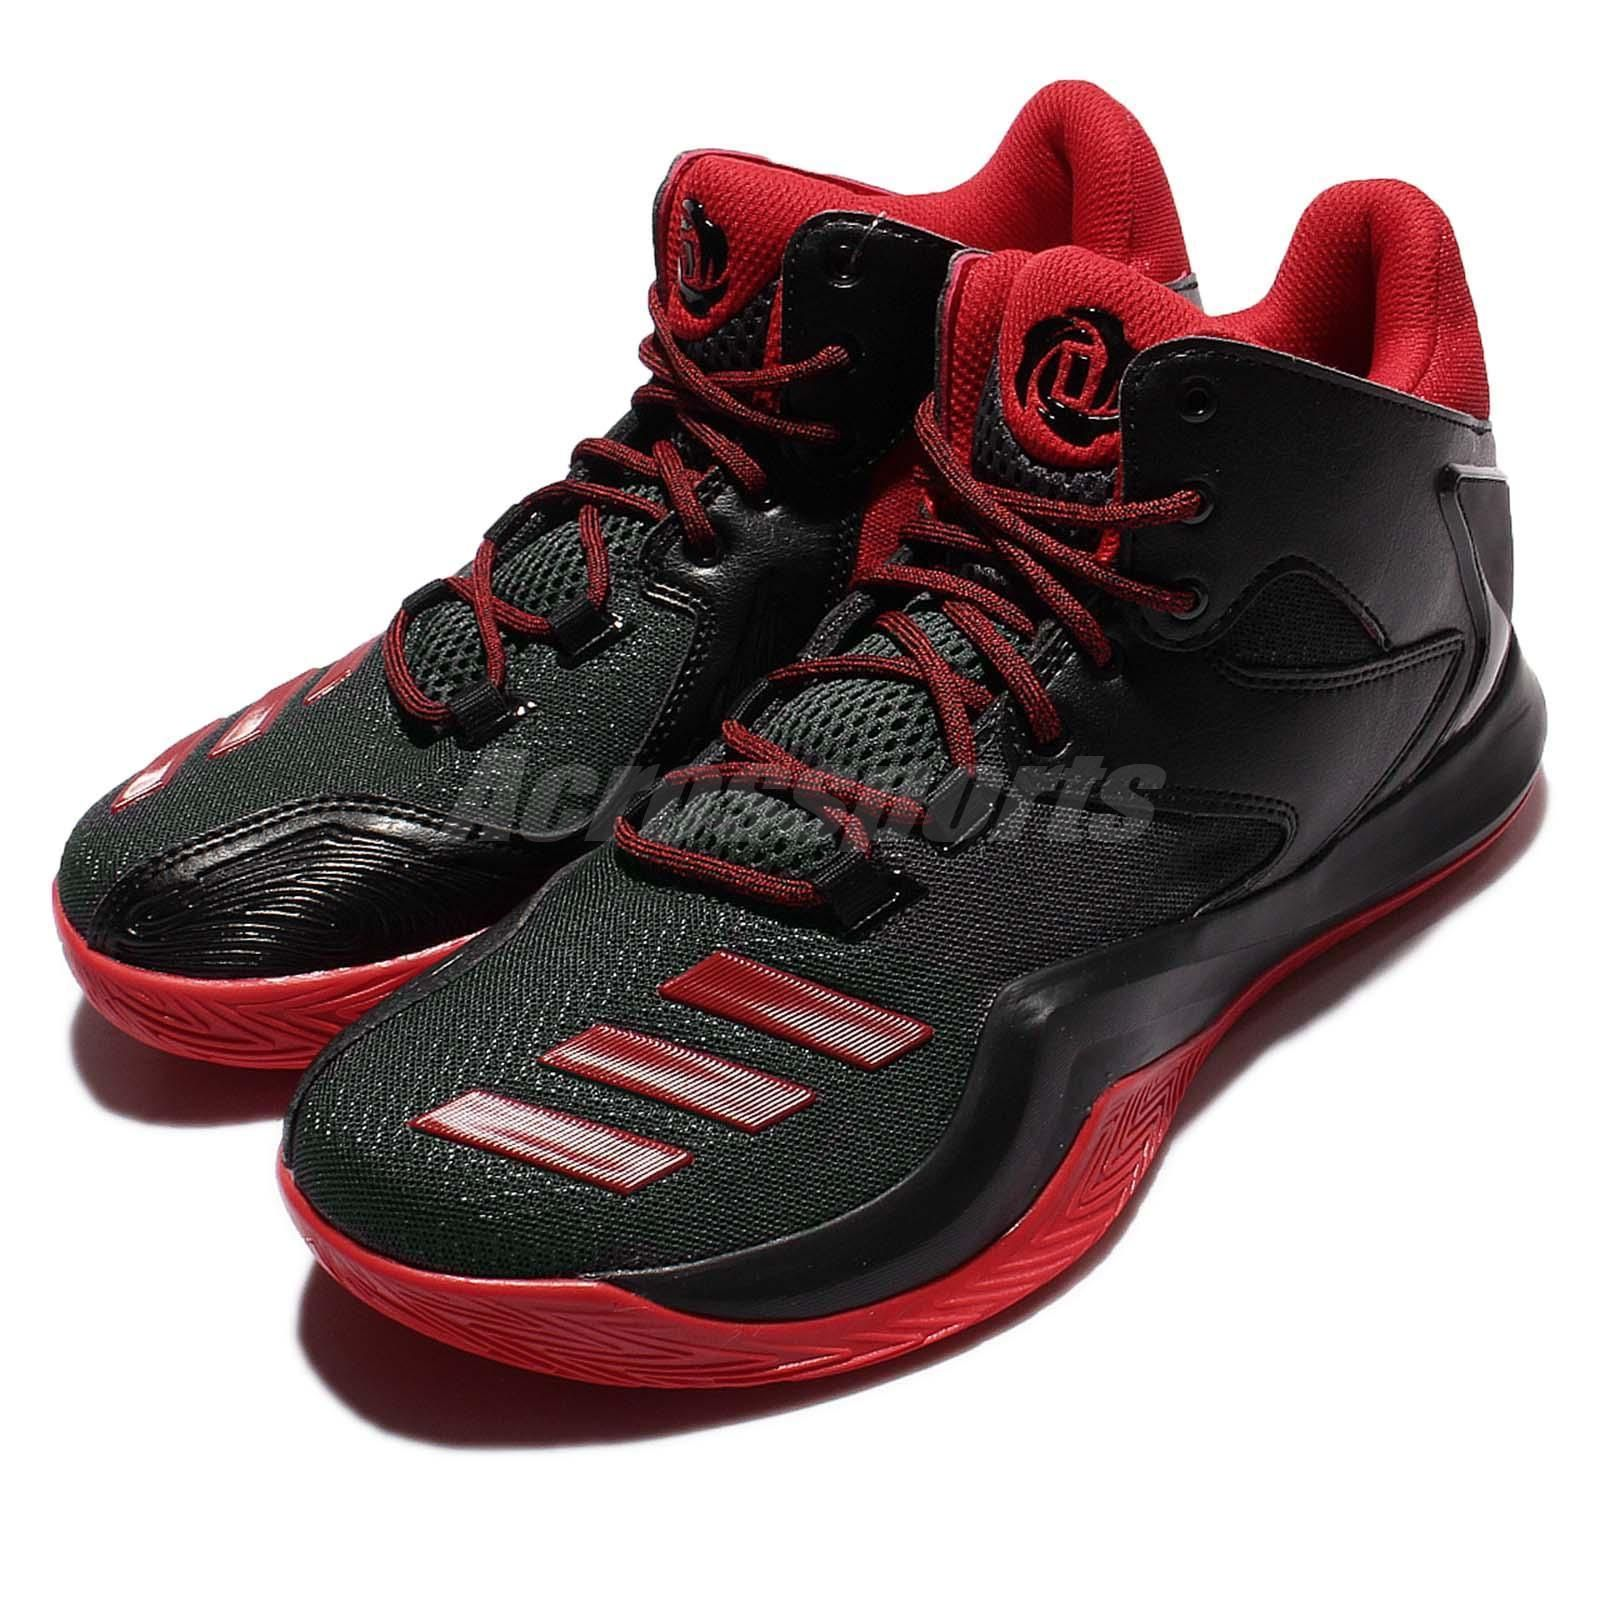 promo code f54fb 3a7e6 ... norway adidas d rose 773 v 5 derrick black red mens basketball shoes  sneakers aq7222 common